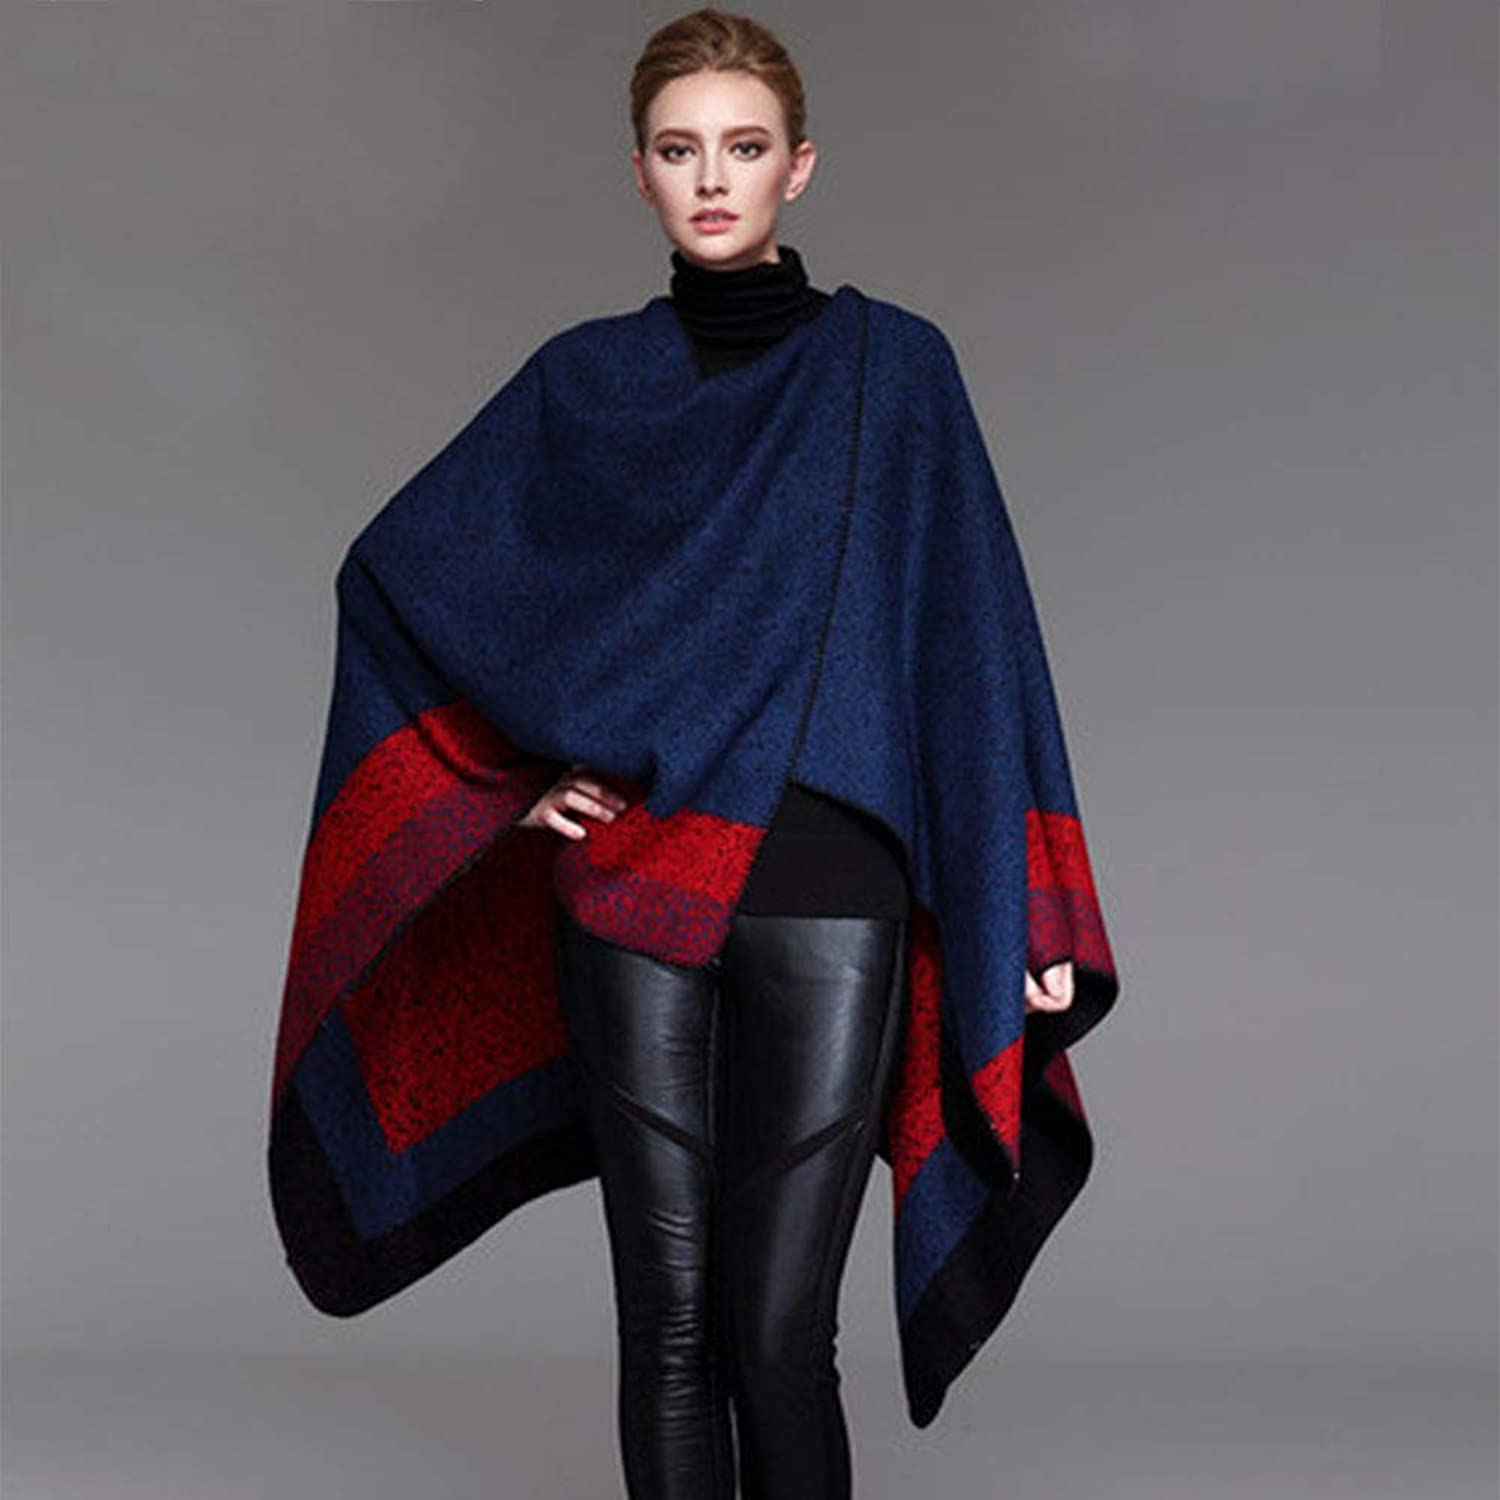 Blanket Scarf Shawl Dualuse Thickened Cloak Shawl Wrapped Big Winter Long Scarf Warm Thick Fashion Female Shawl Collar